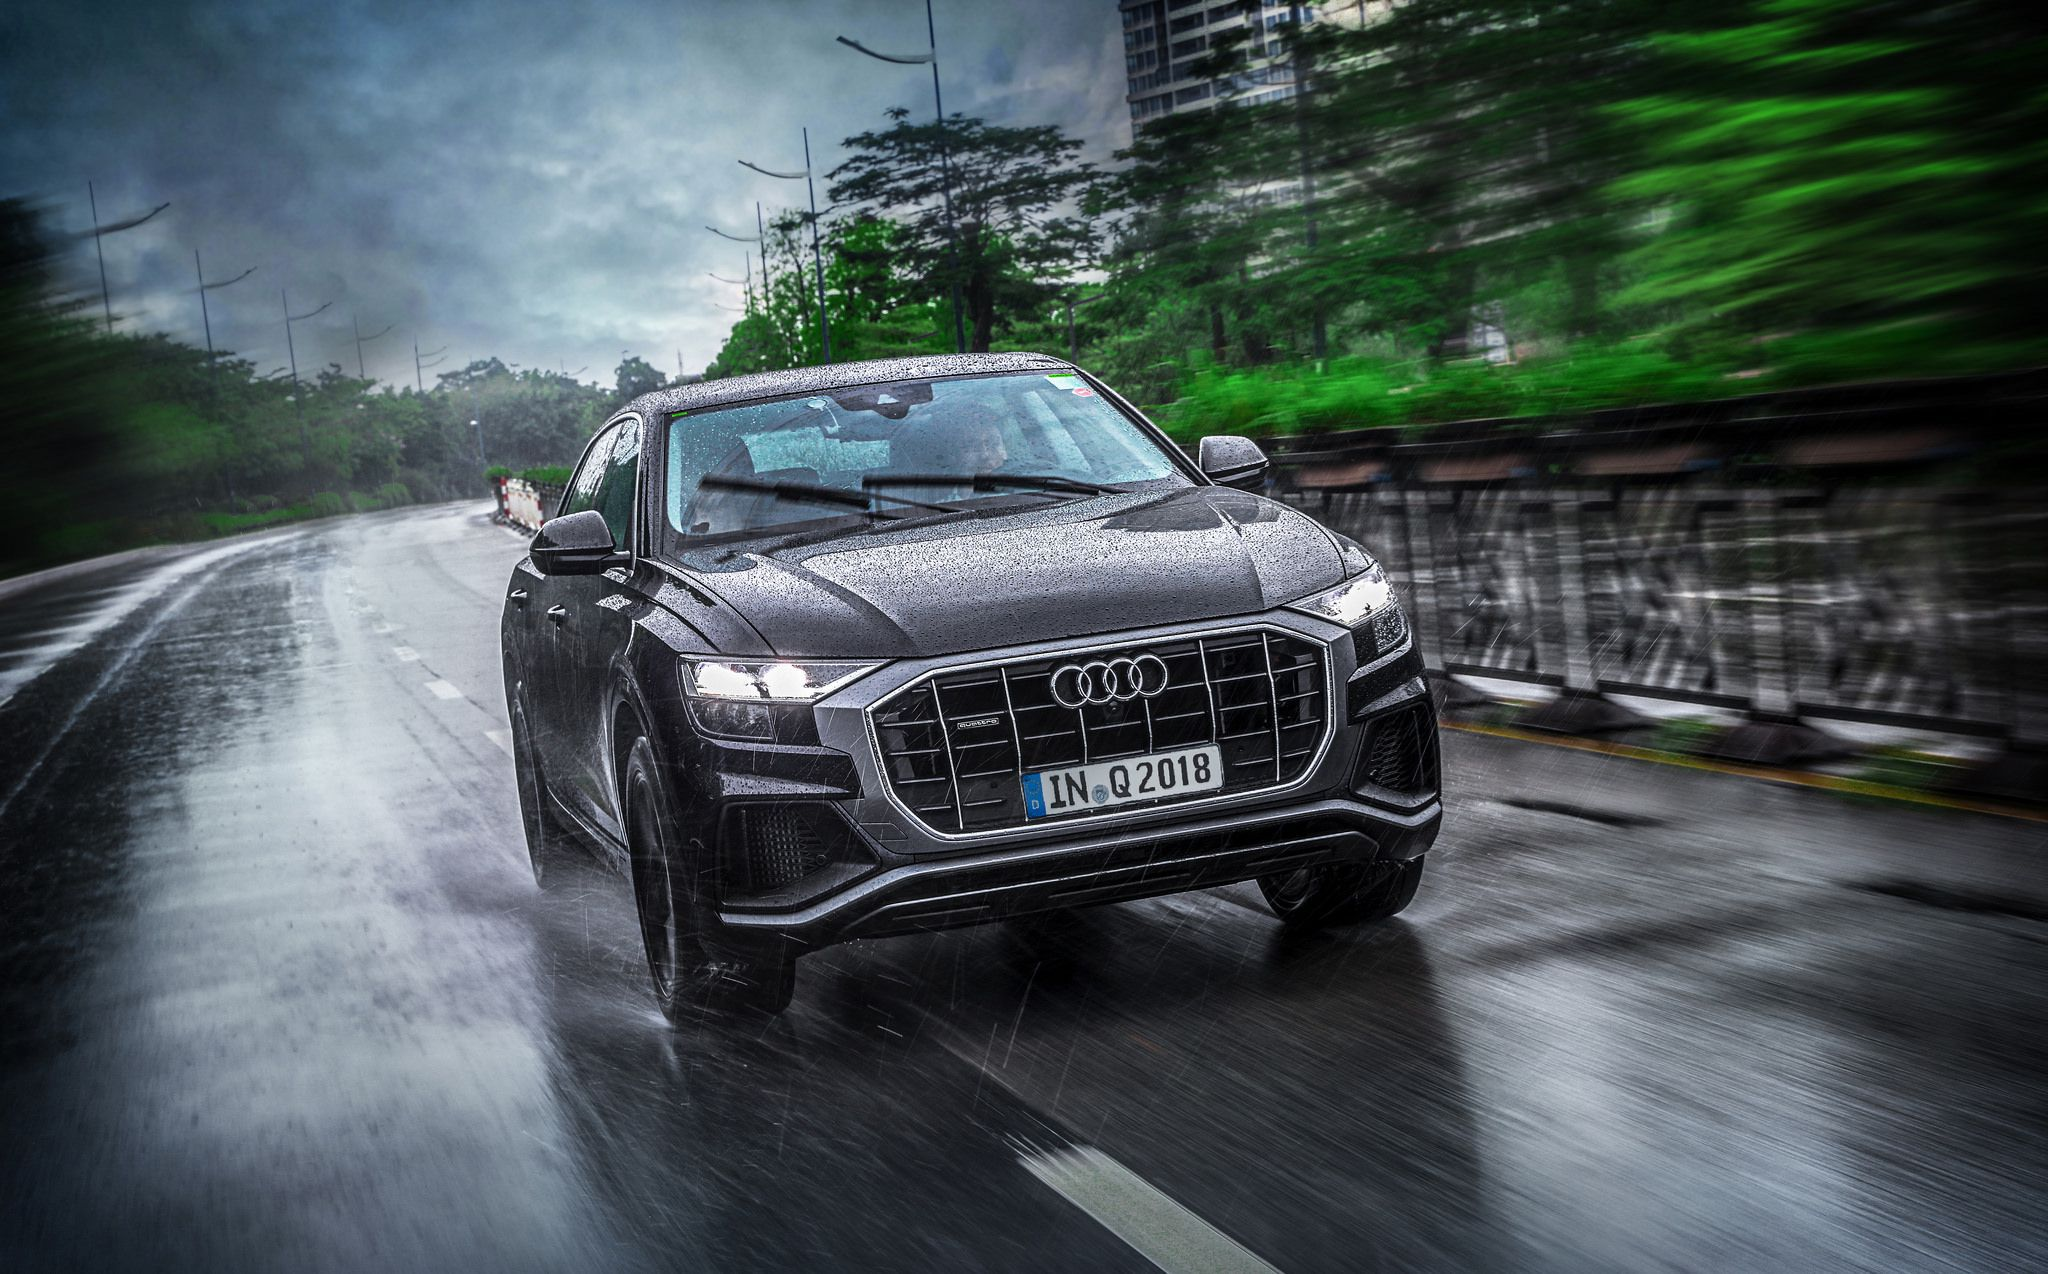 2019 Audi Q8 Crossover in Black, green and yellow colors